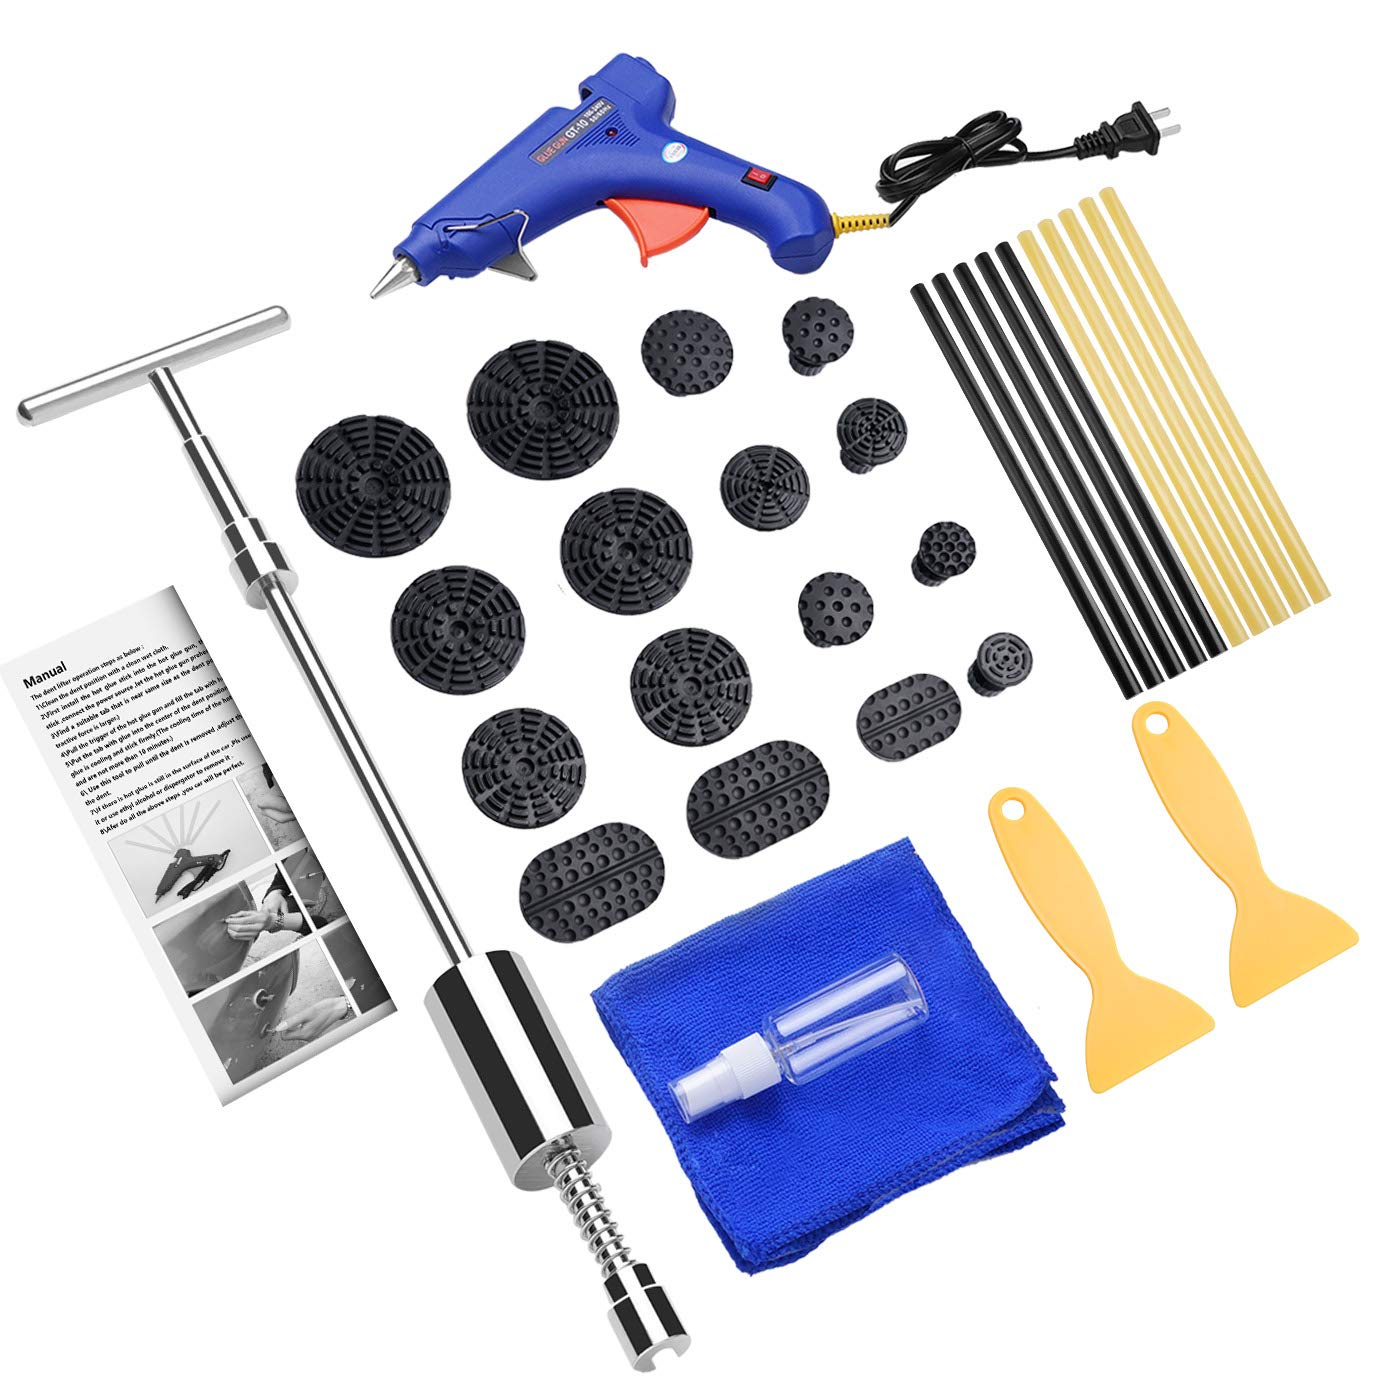 BETIMESYU 32PCS Dent Remover Repair Tools Kits Dent Puller Paintless Slide Hammer with Glue Gun Sticks for Vehicle Car Auto Body Damage Remover